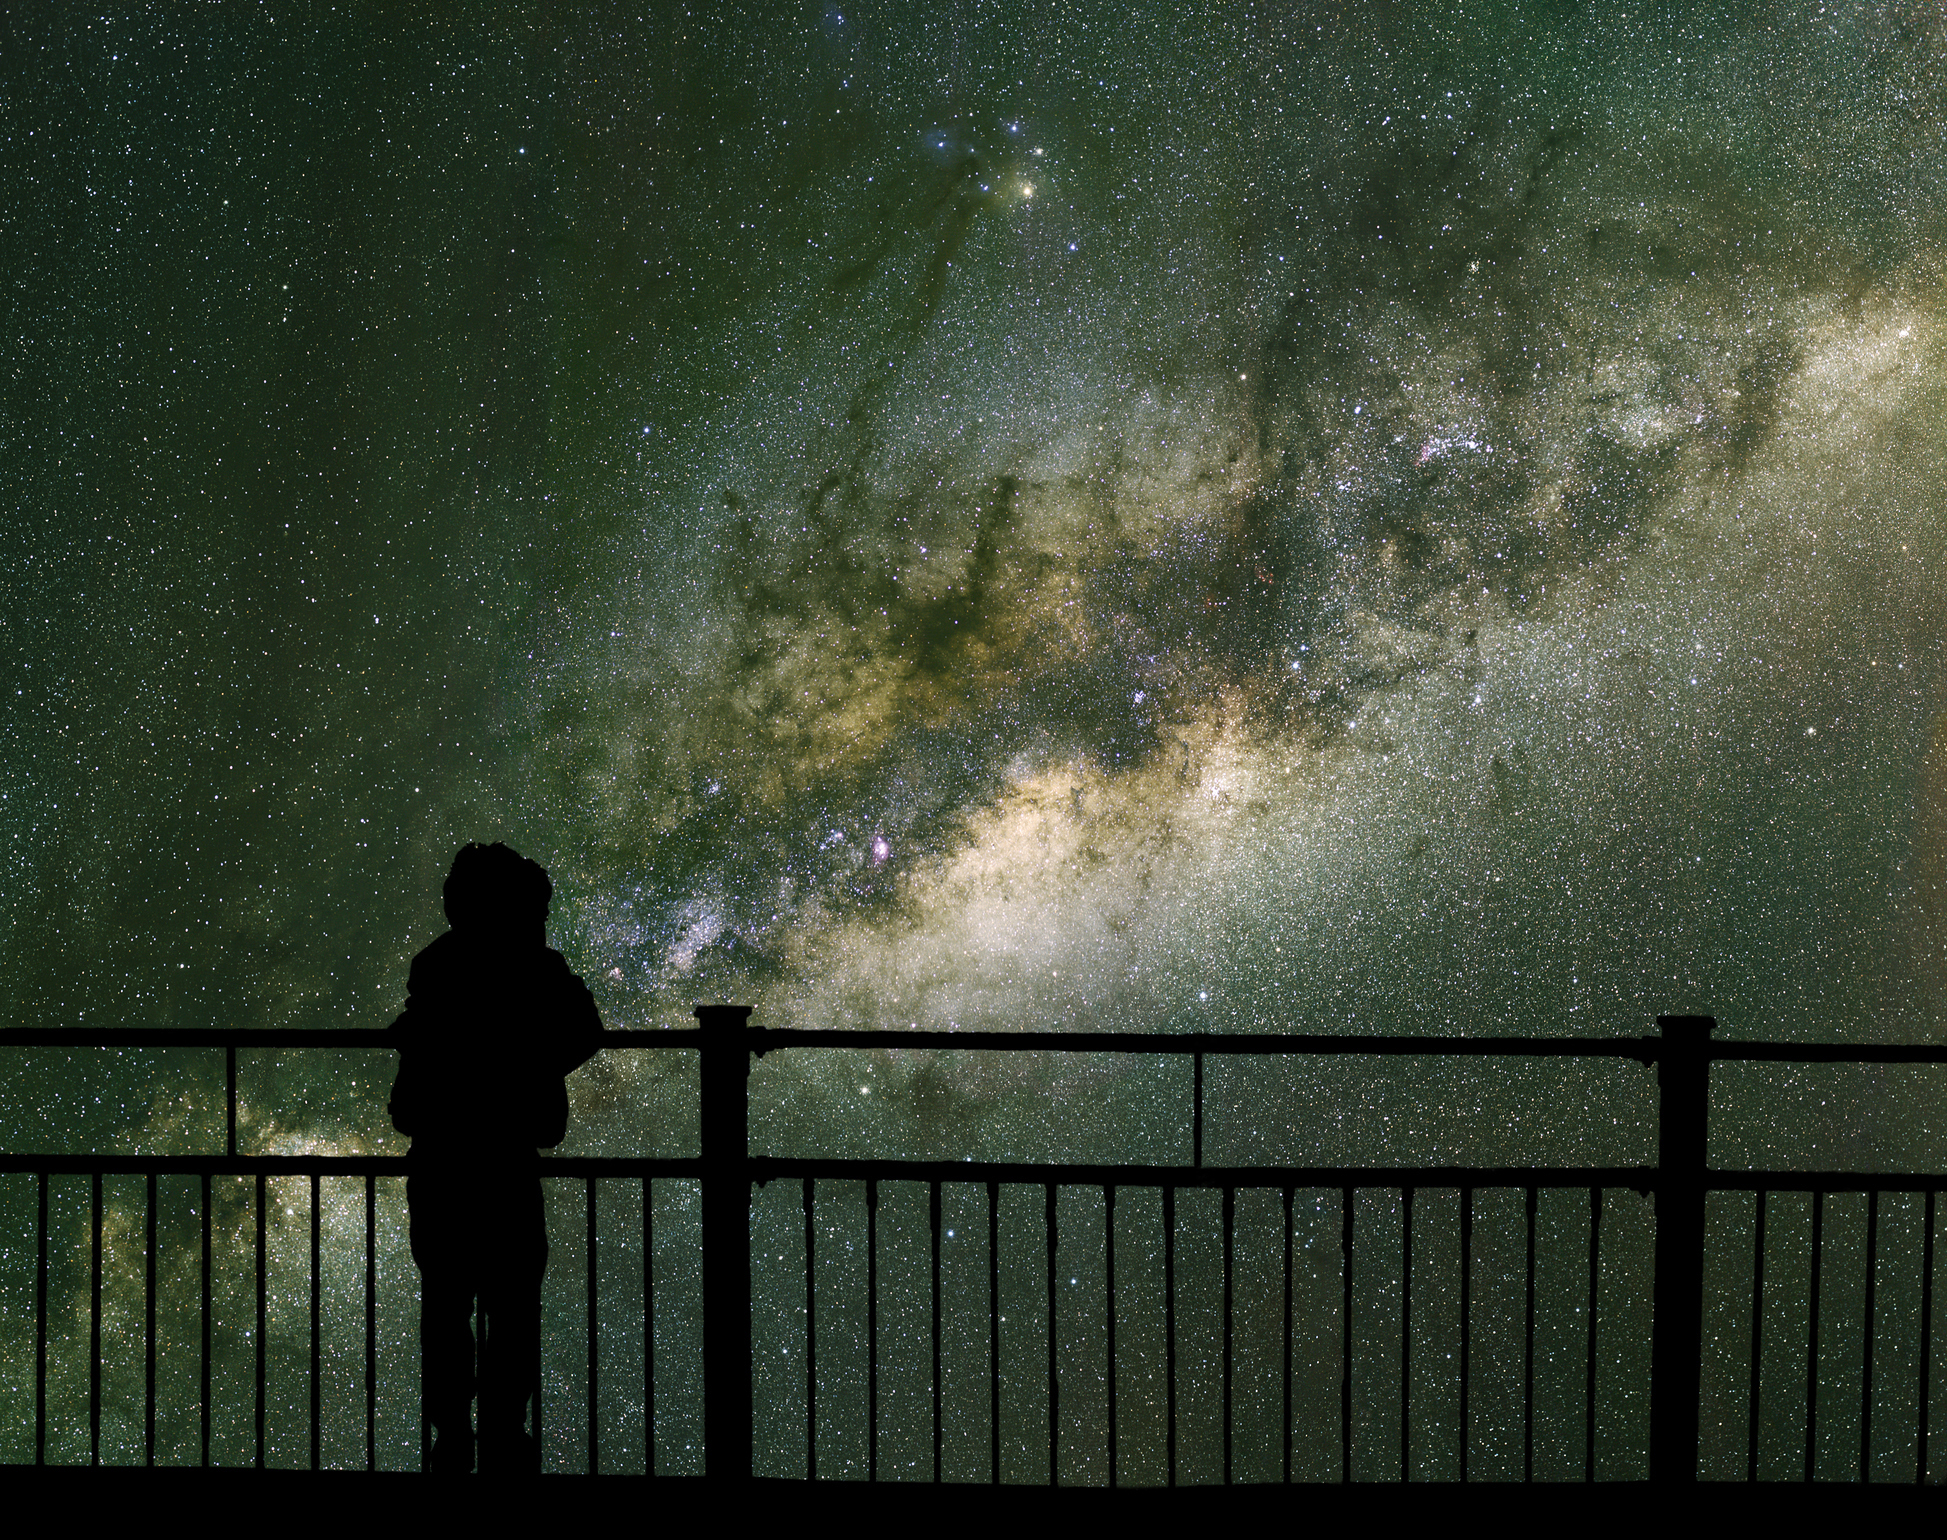 Man looking at the starry sky